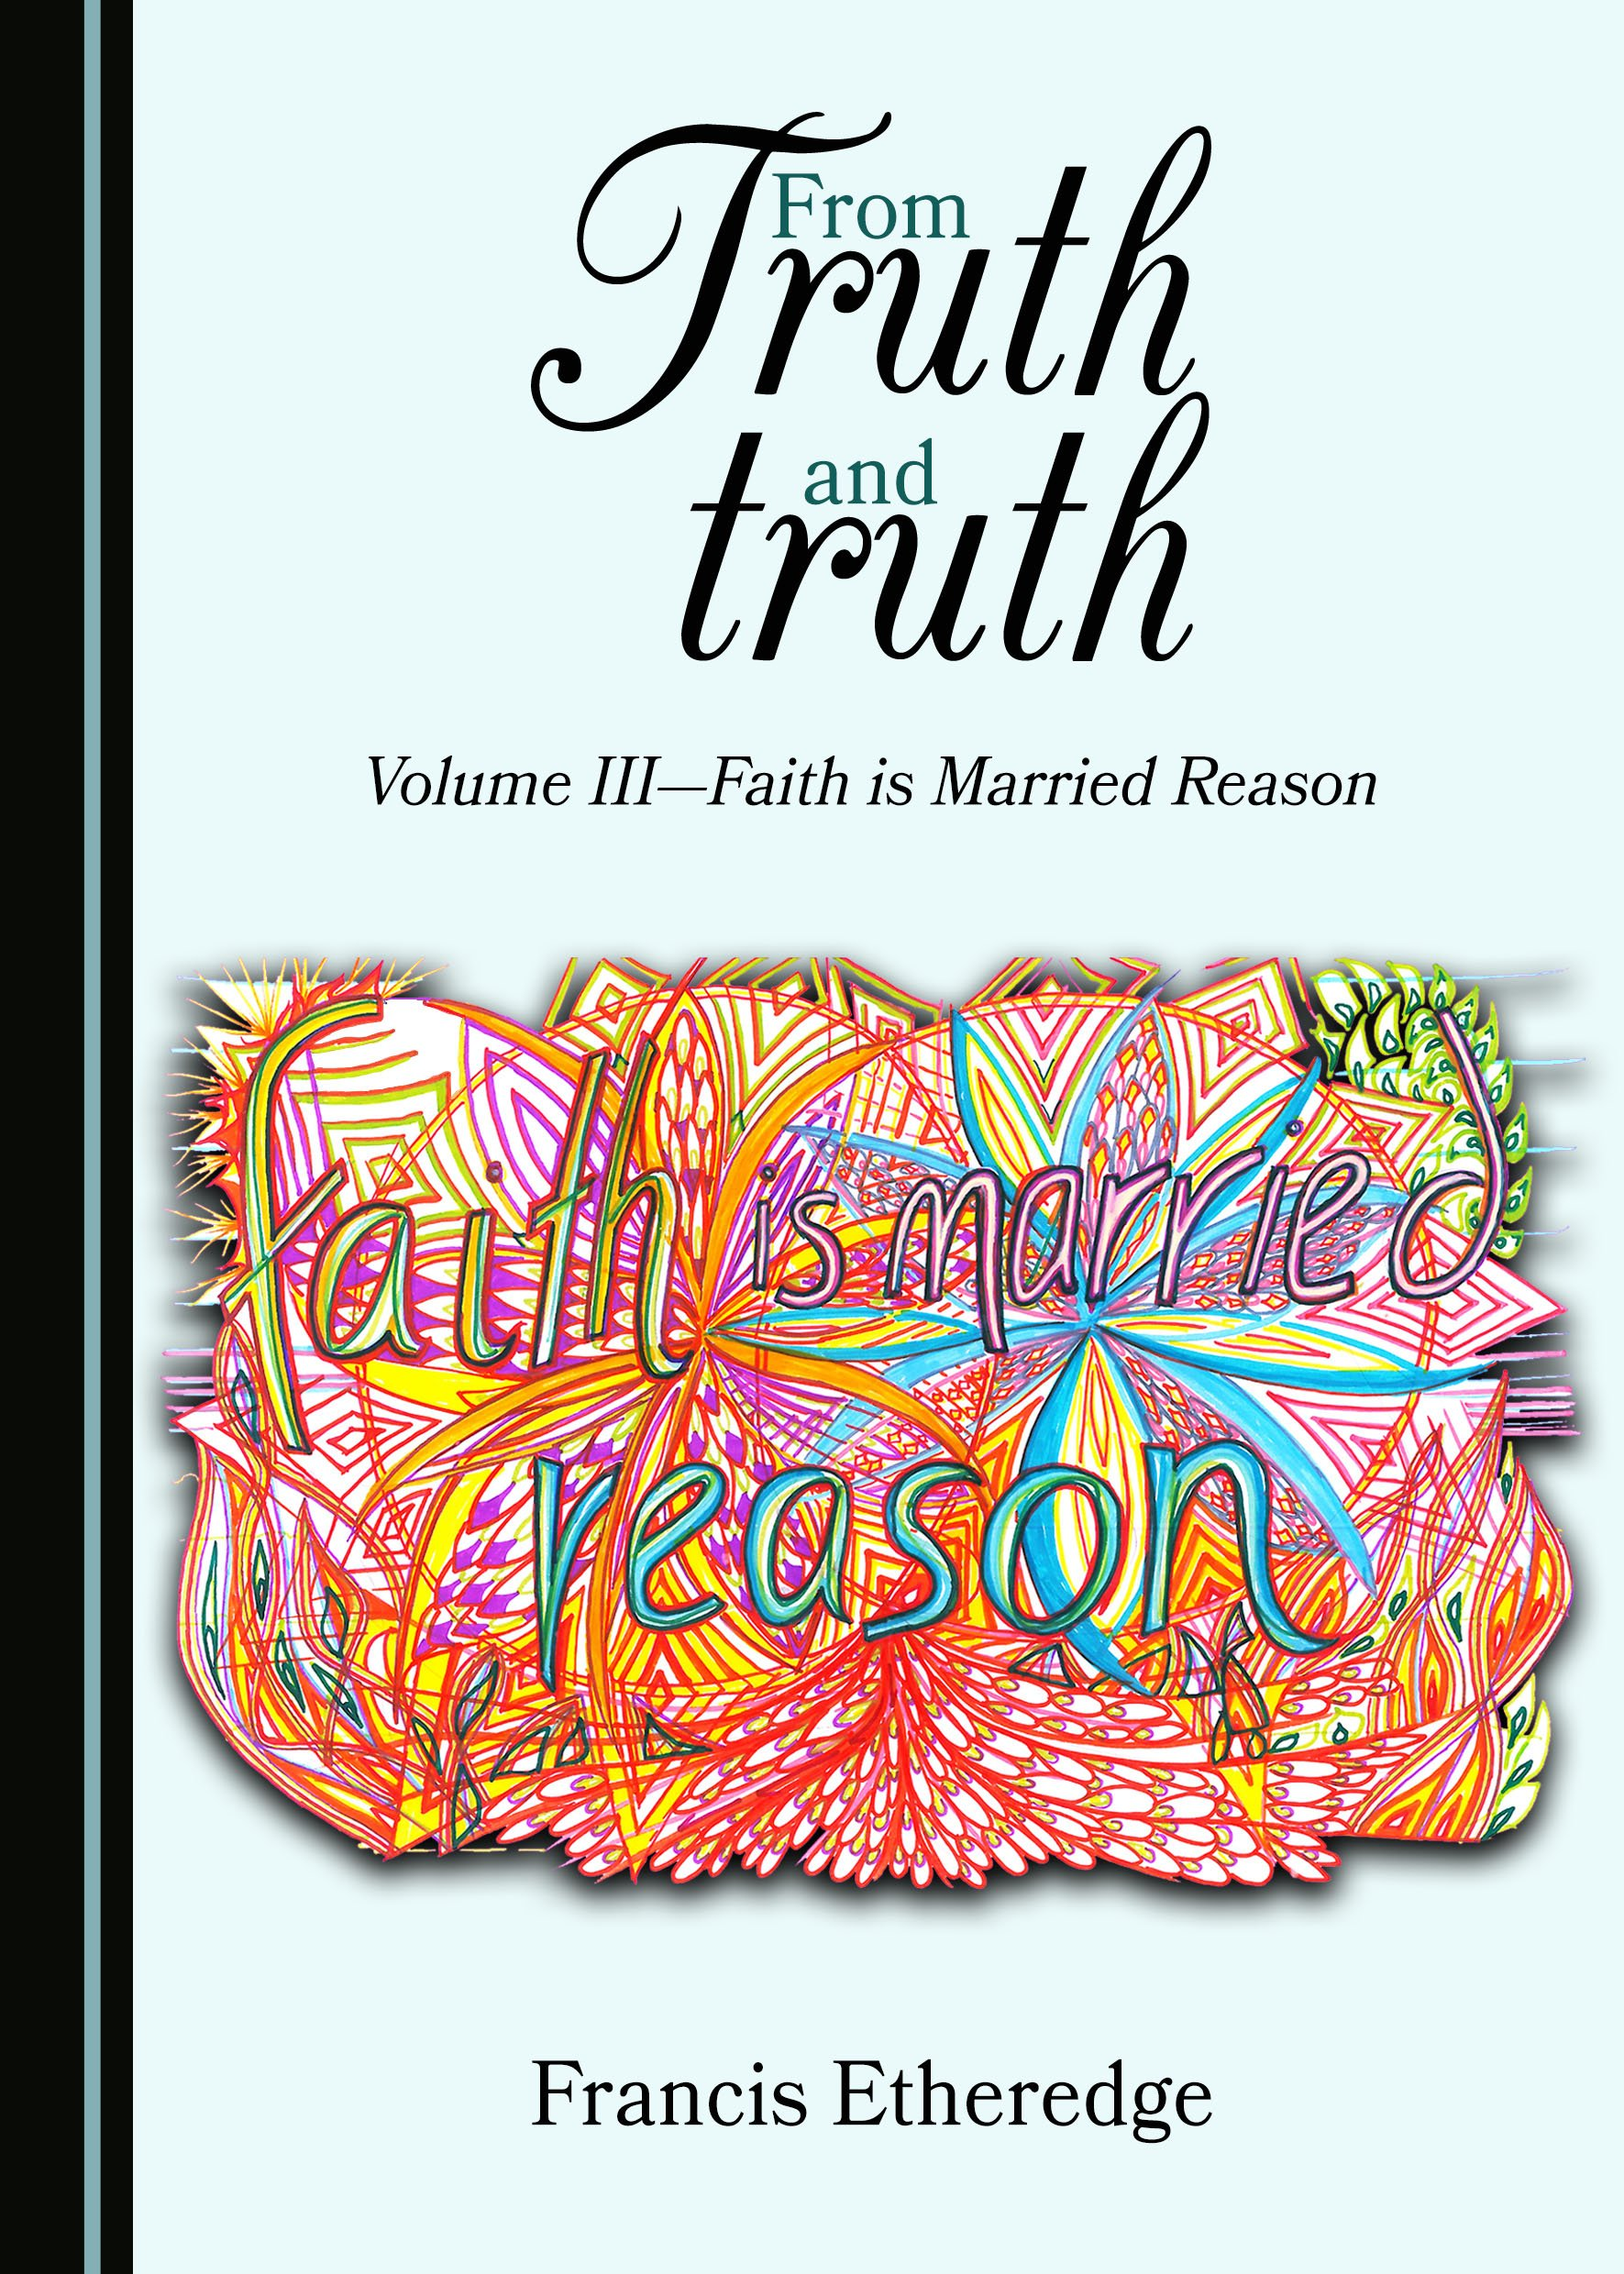 From Truth and truth: Volume III—Faith is Married Reason